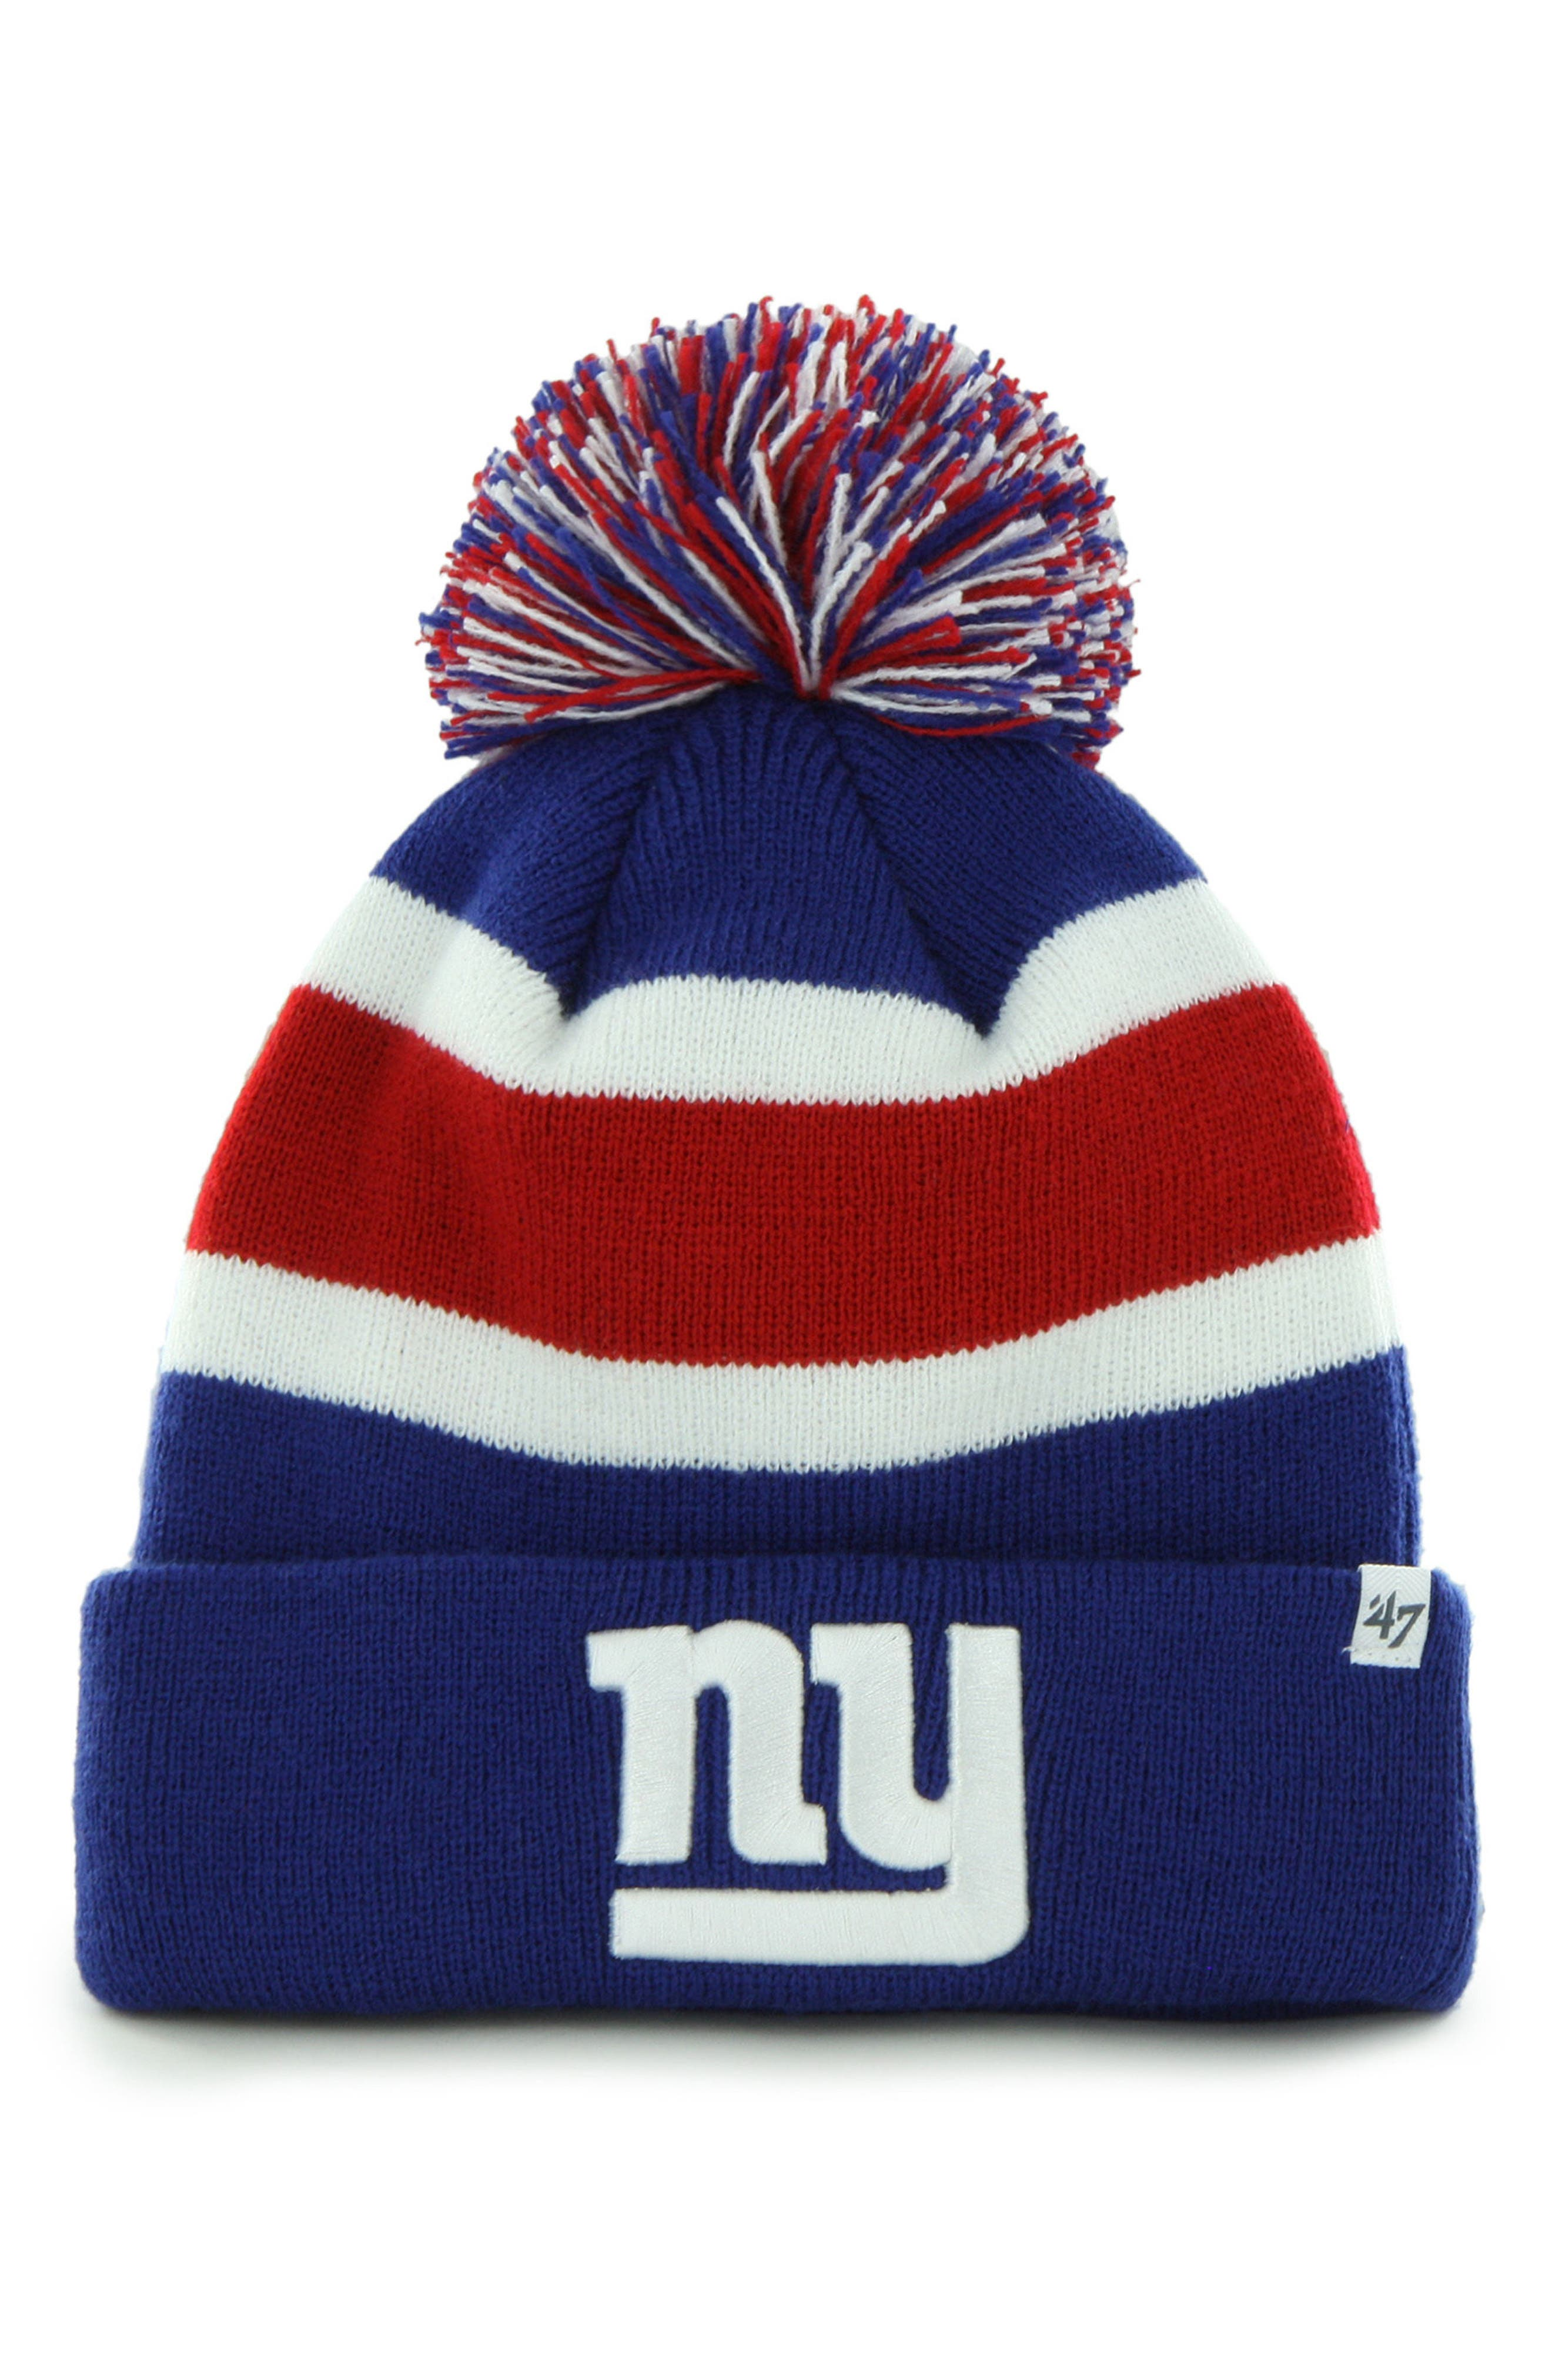 NFL Breakaway Knit Cap,                             Main thumbnail 3, color,